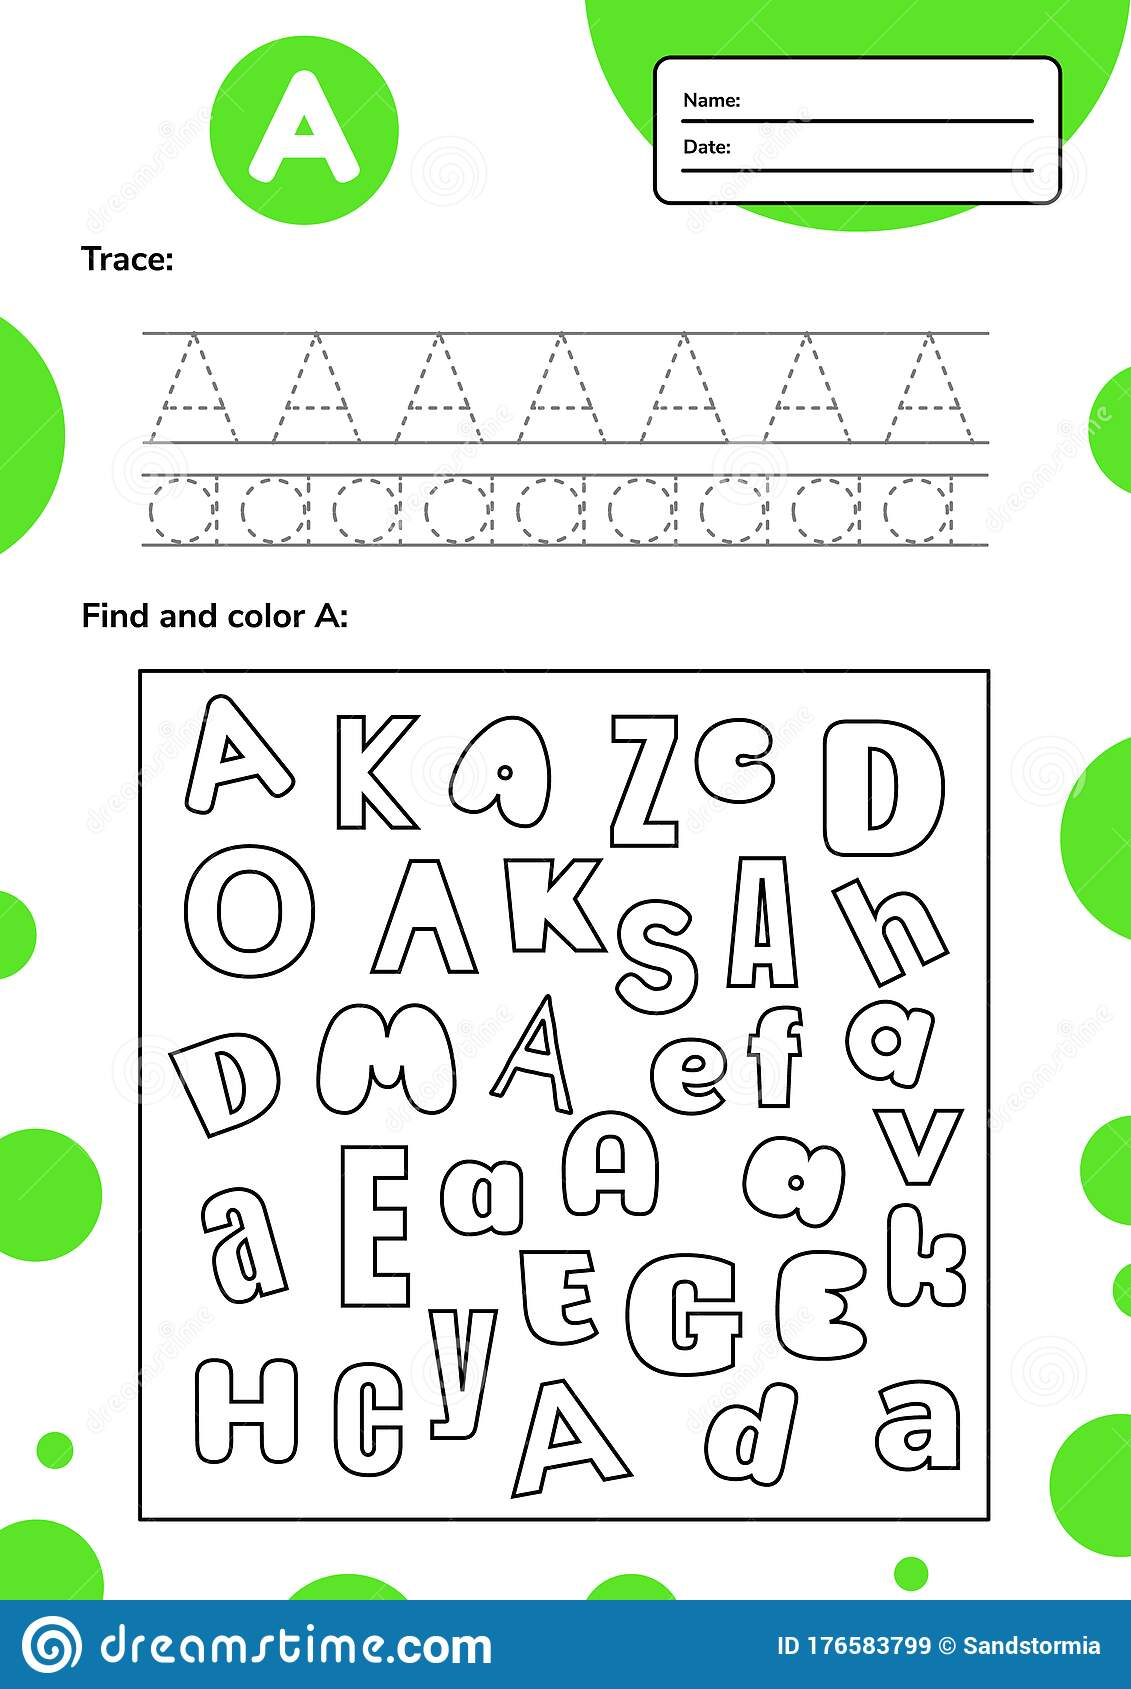 Trace Letter Worksheet A4 For Kids Preschool And School